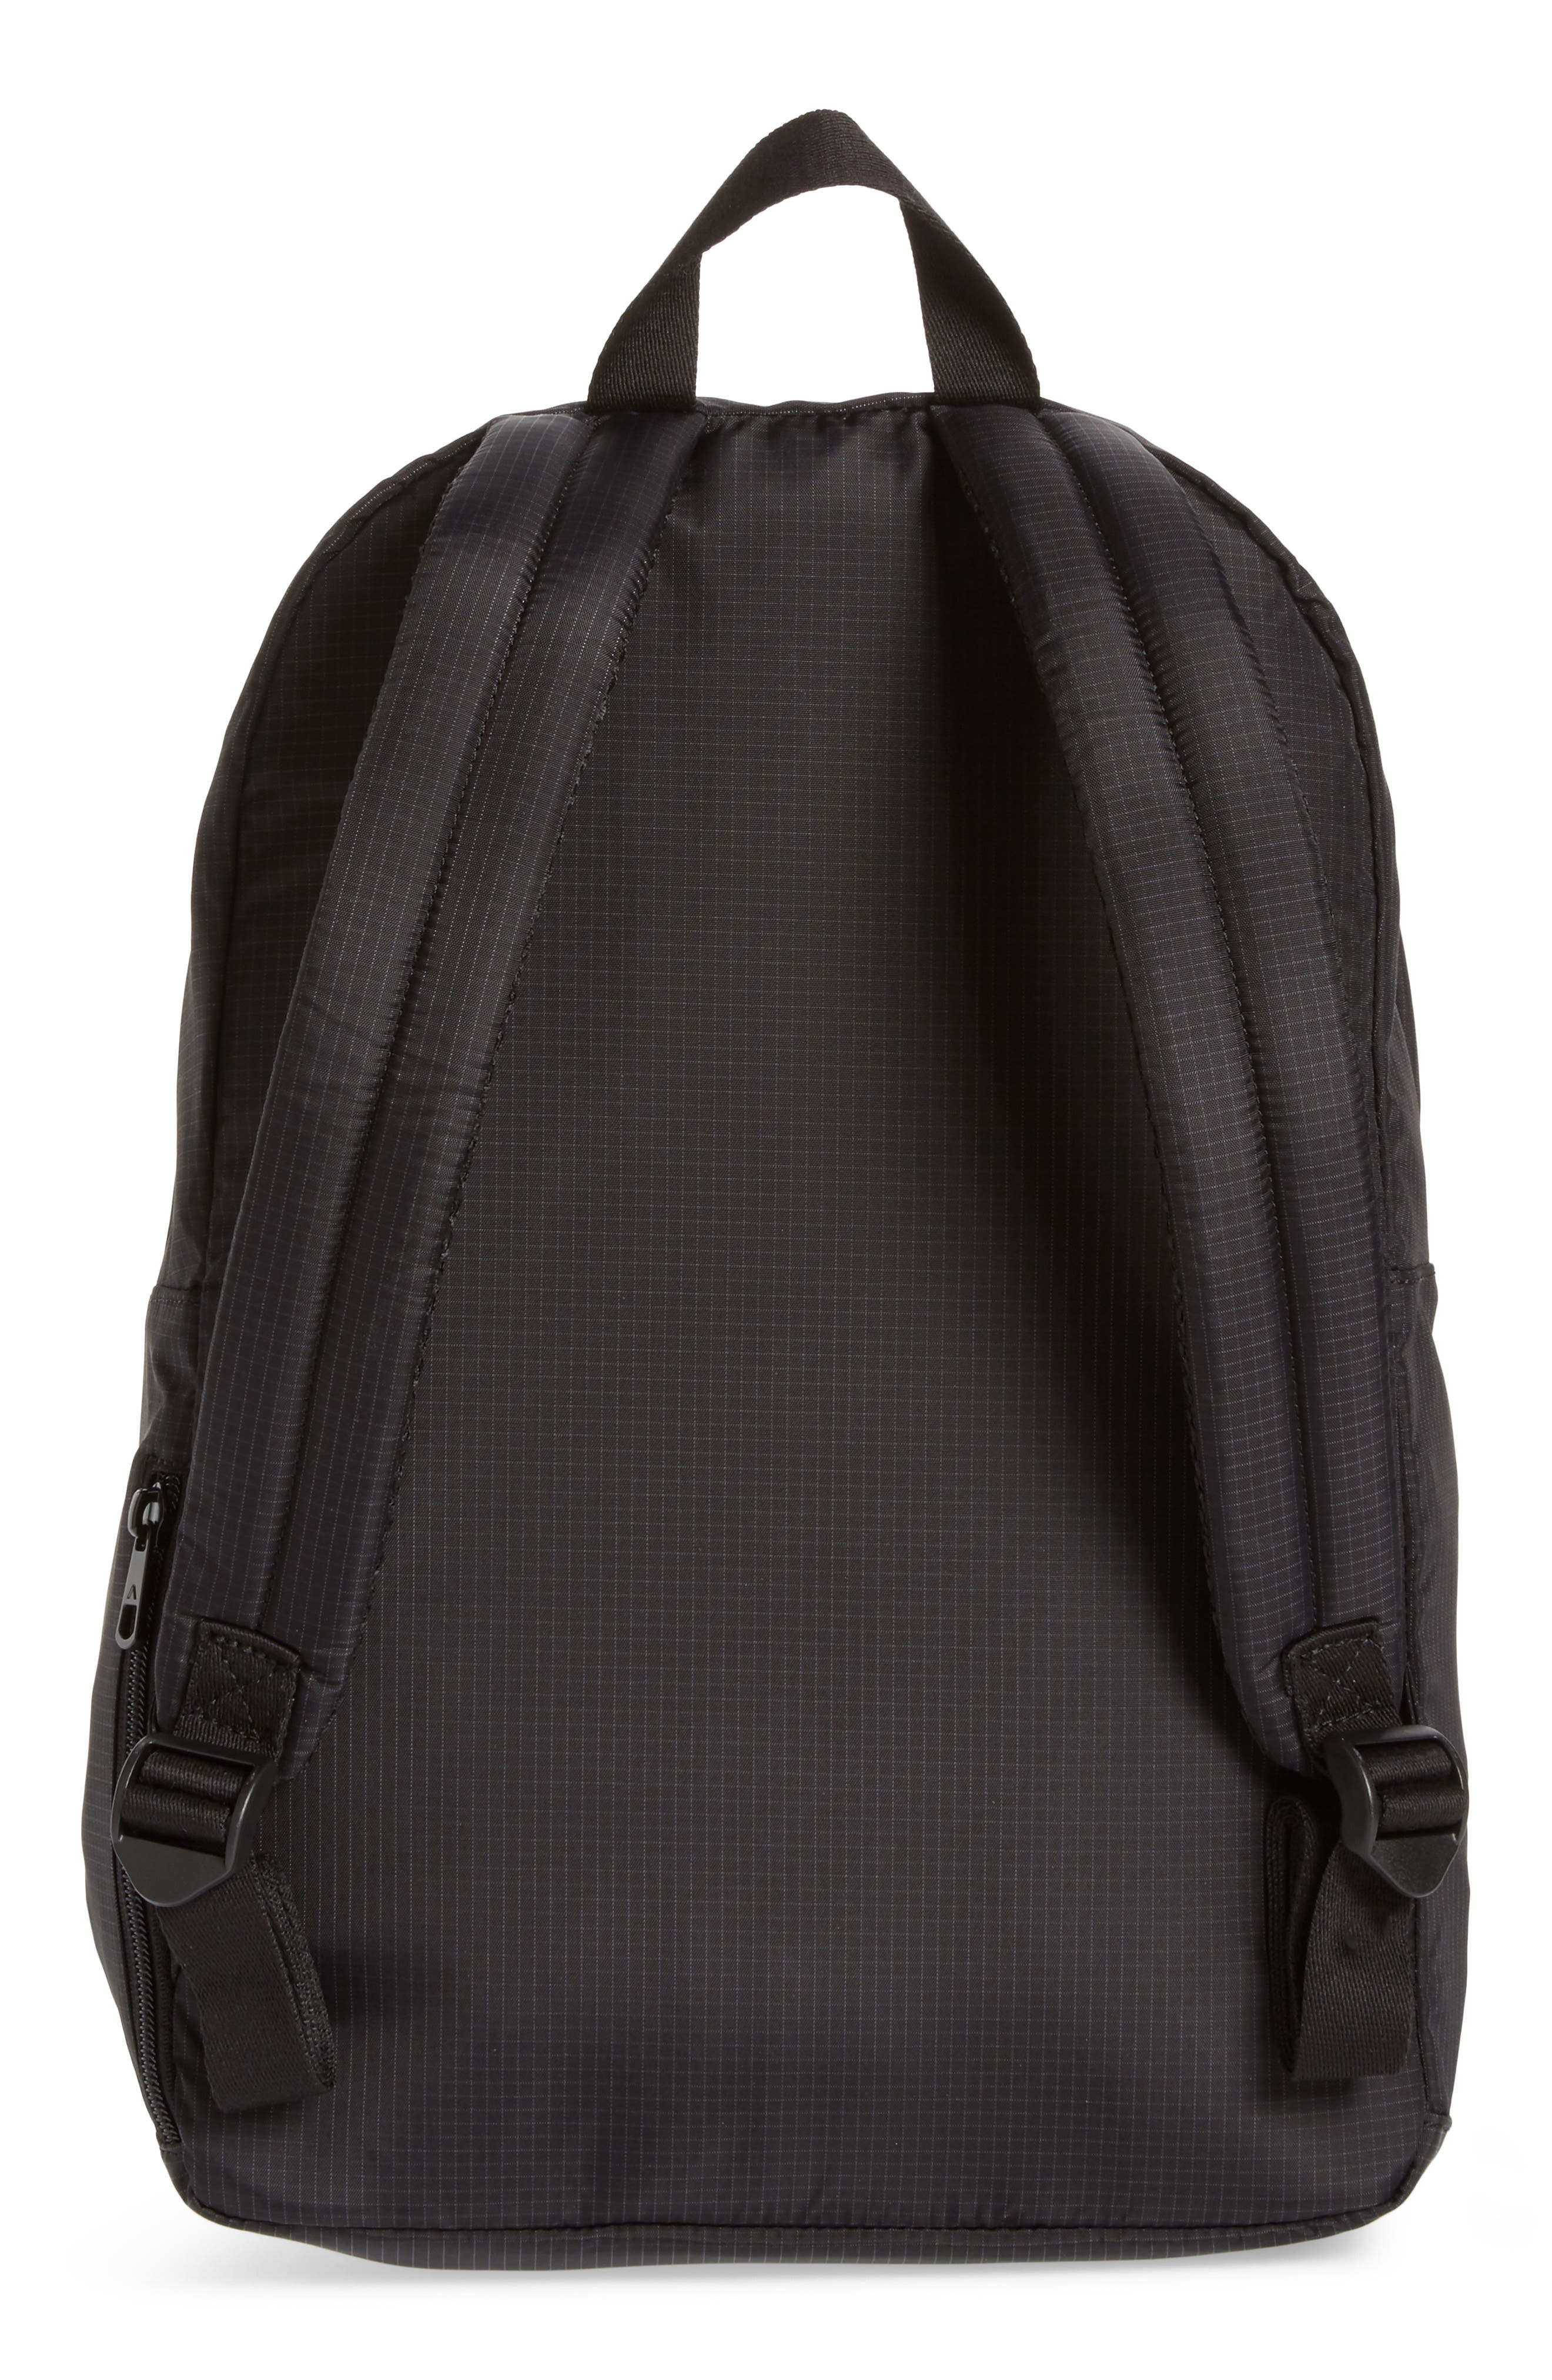 STATE Wyckoff Marshall Laptop Ripstop Backpack,                             Alternate thumbnail 3, color,                             001